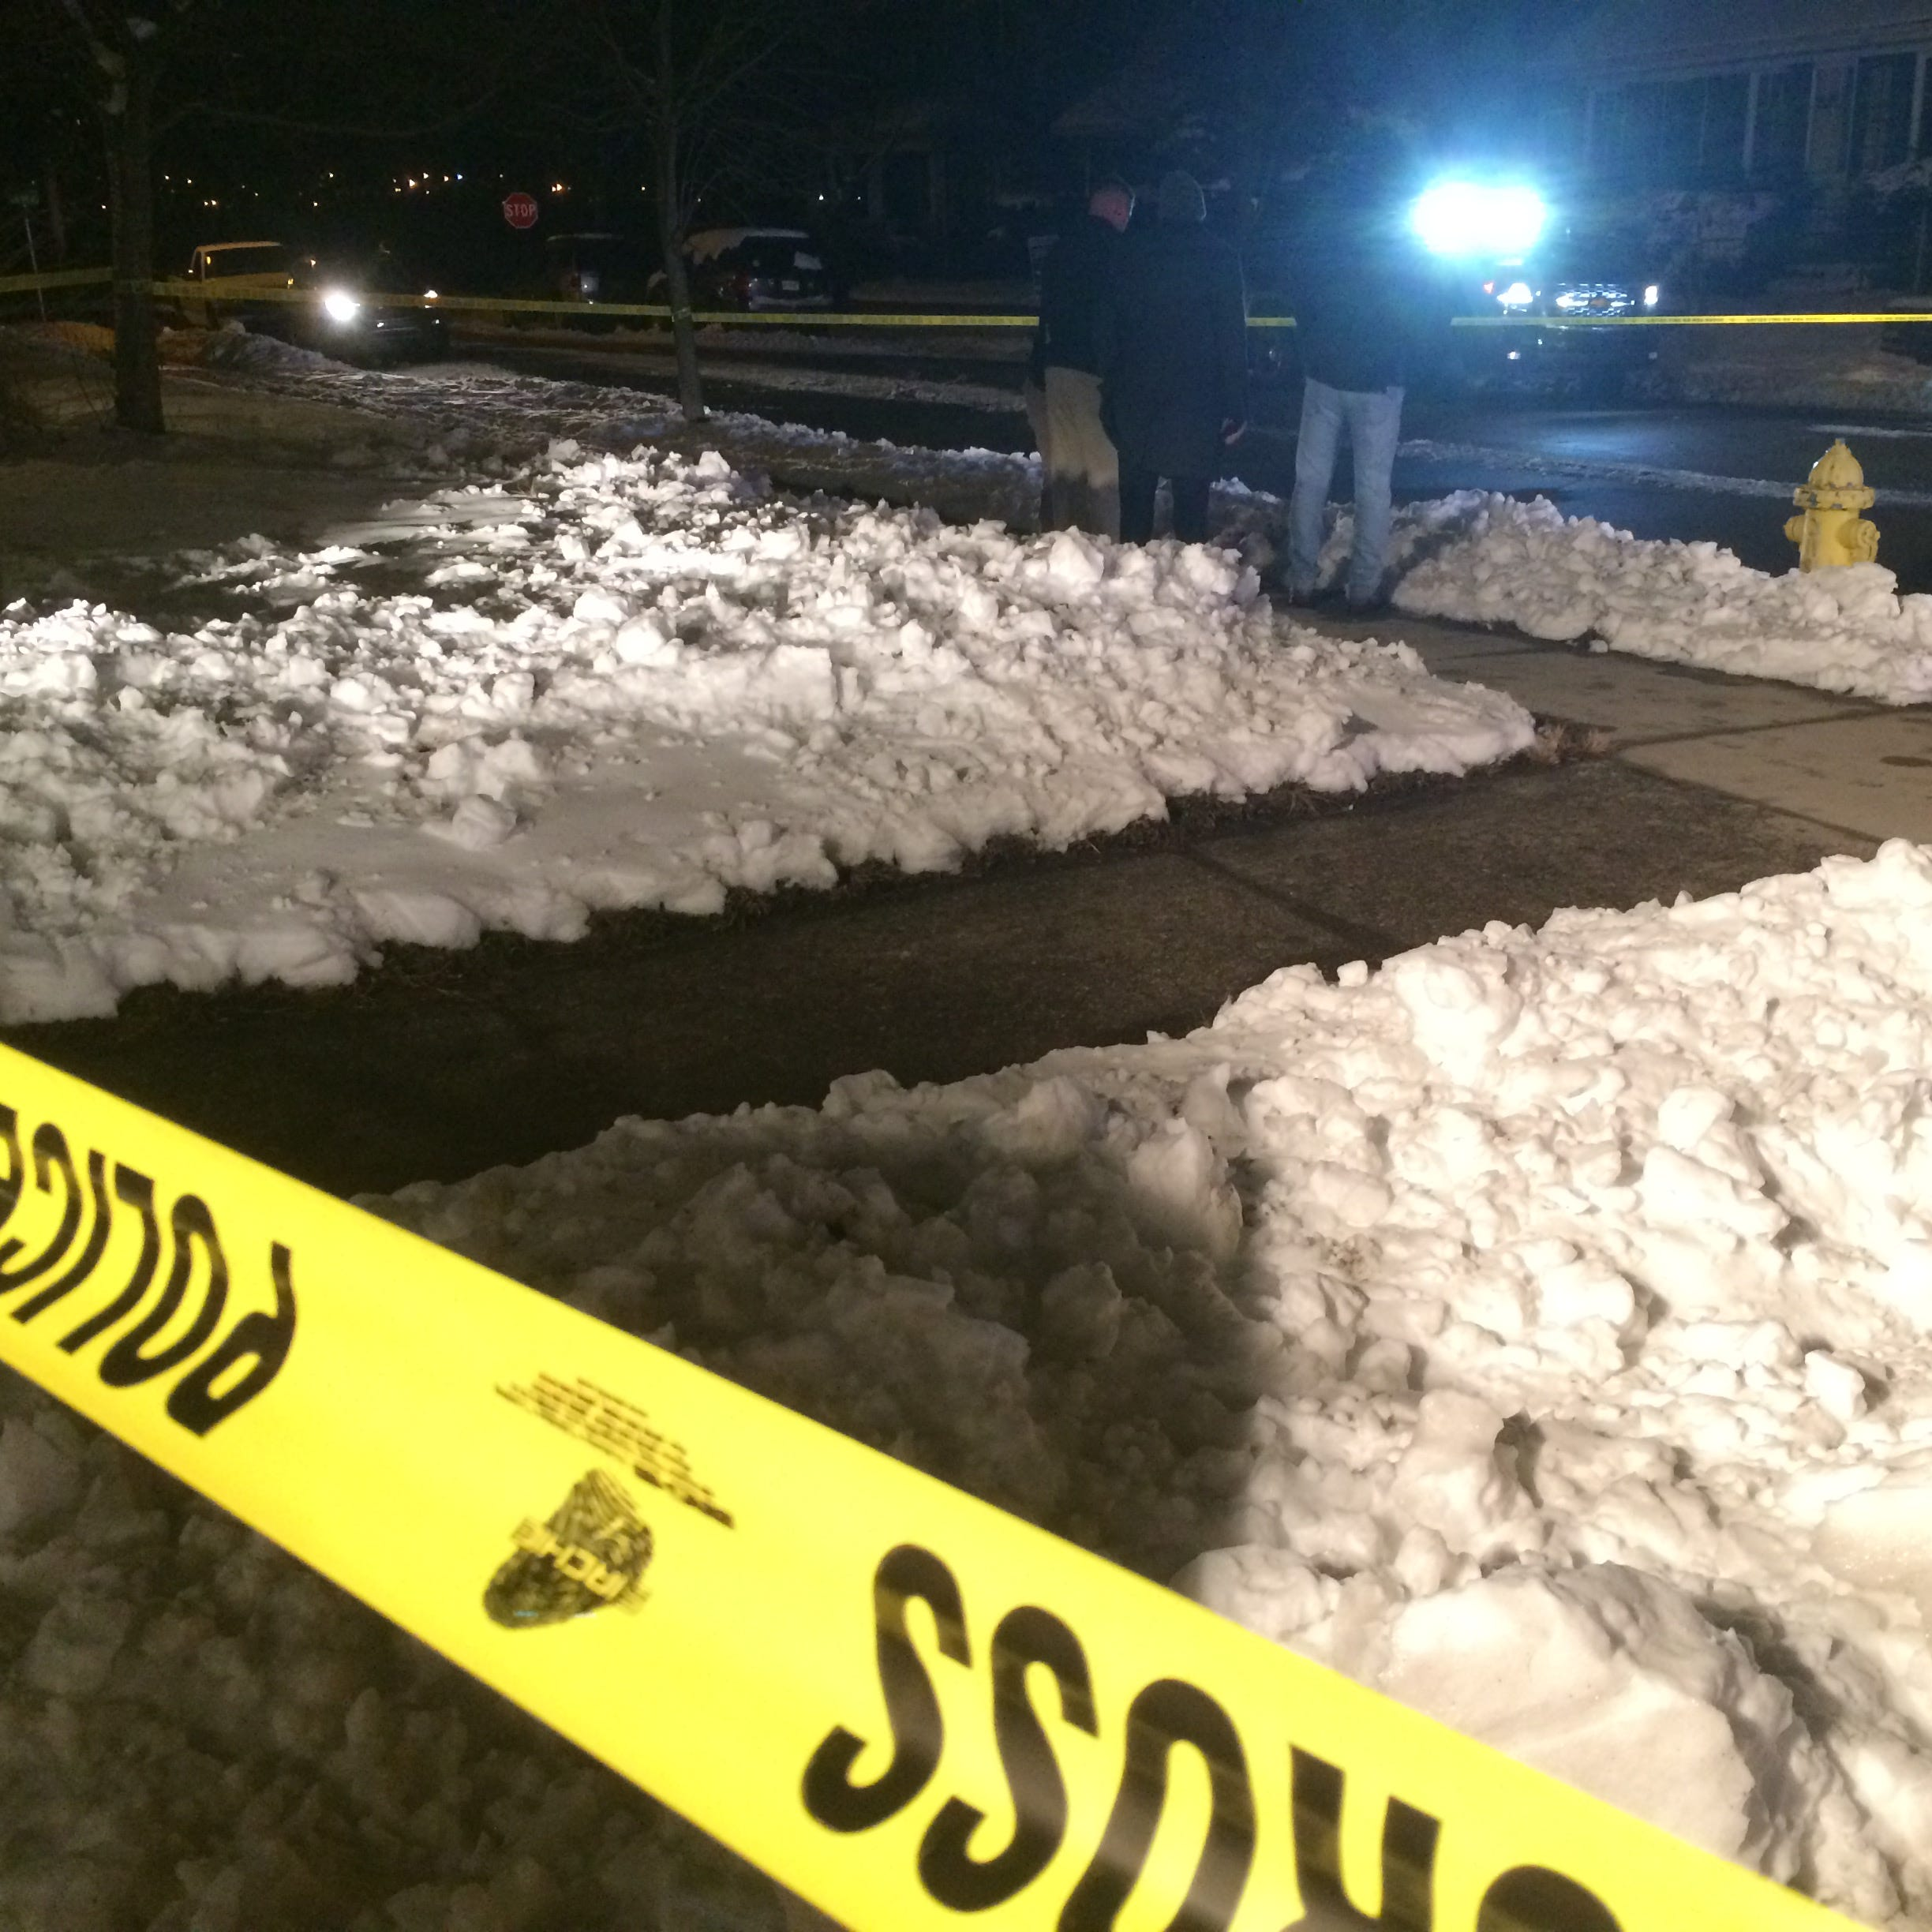 RPD tries to determine who shot teen and why